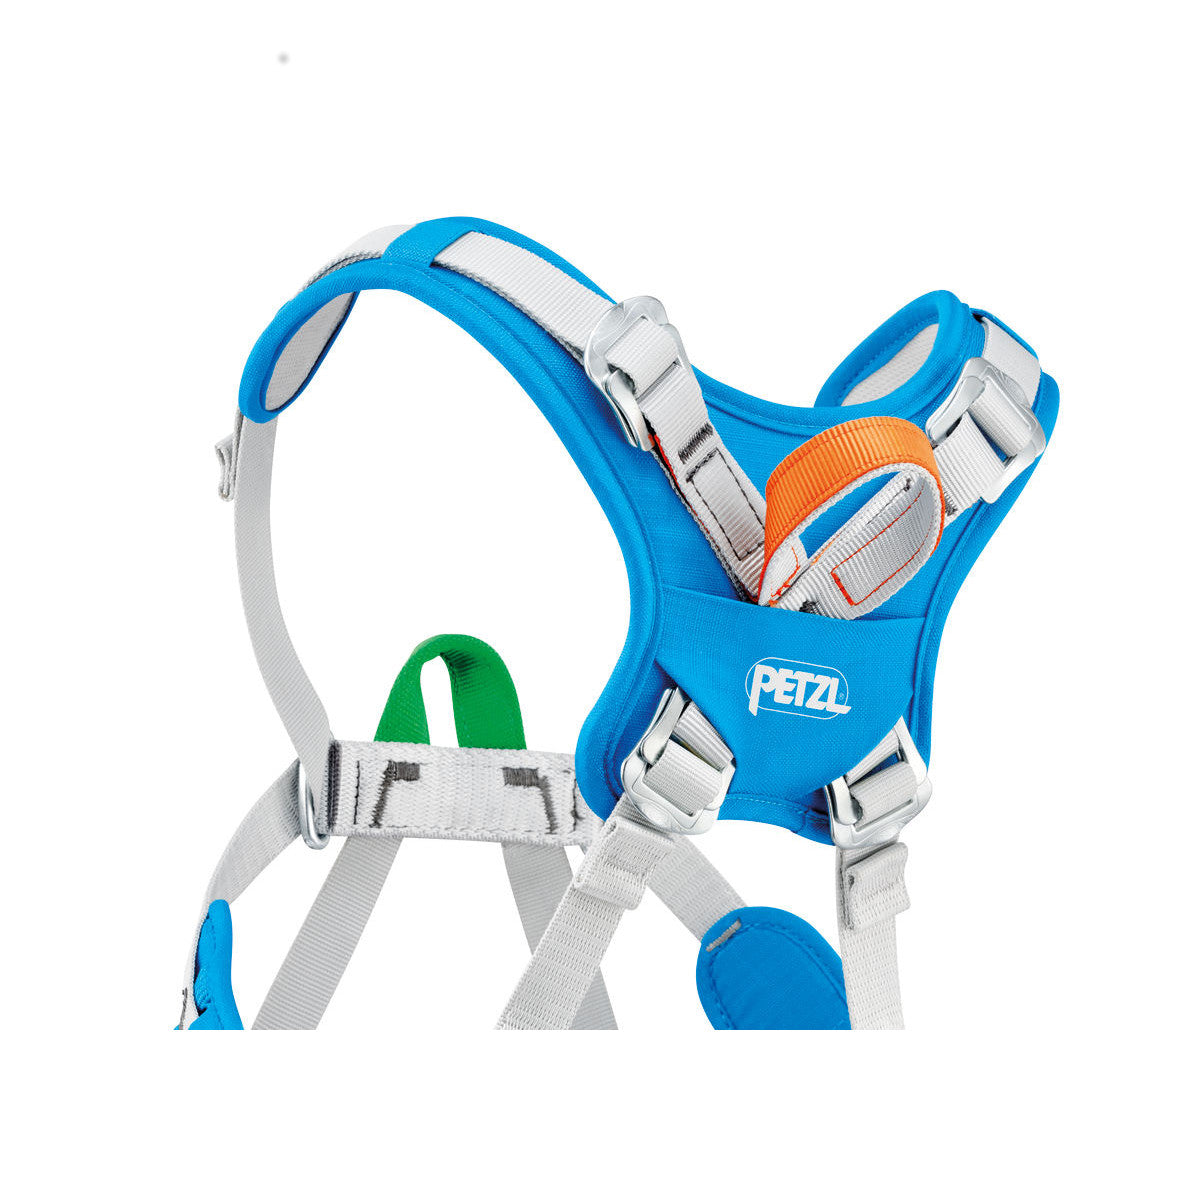 Petzl Ouistiti Kids Harness, close up of the back shoulder strap and rear loop design